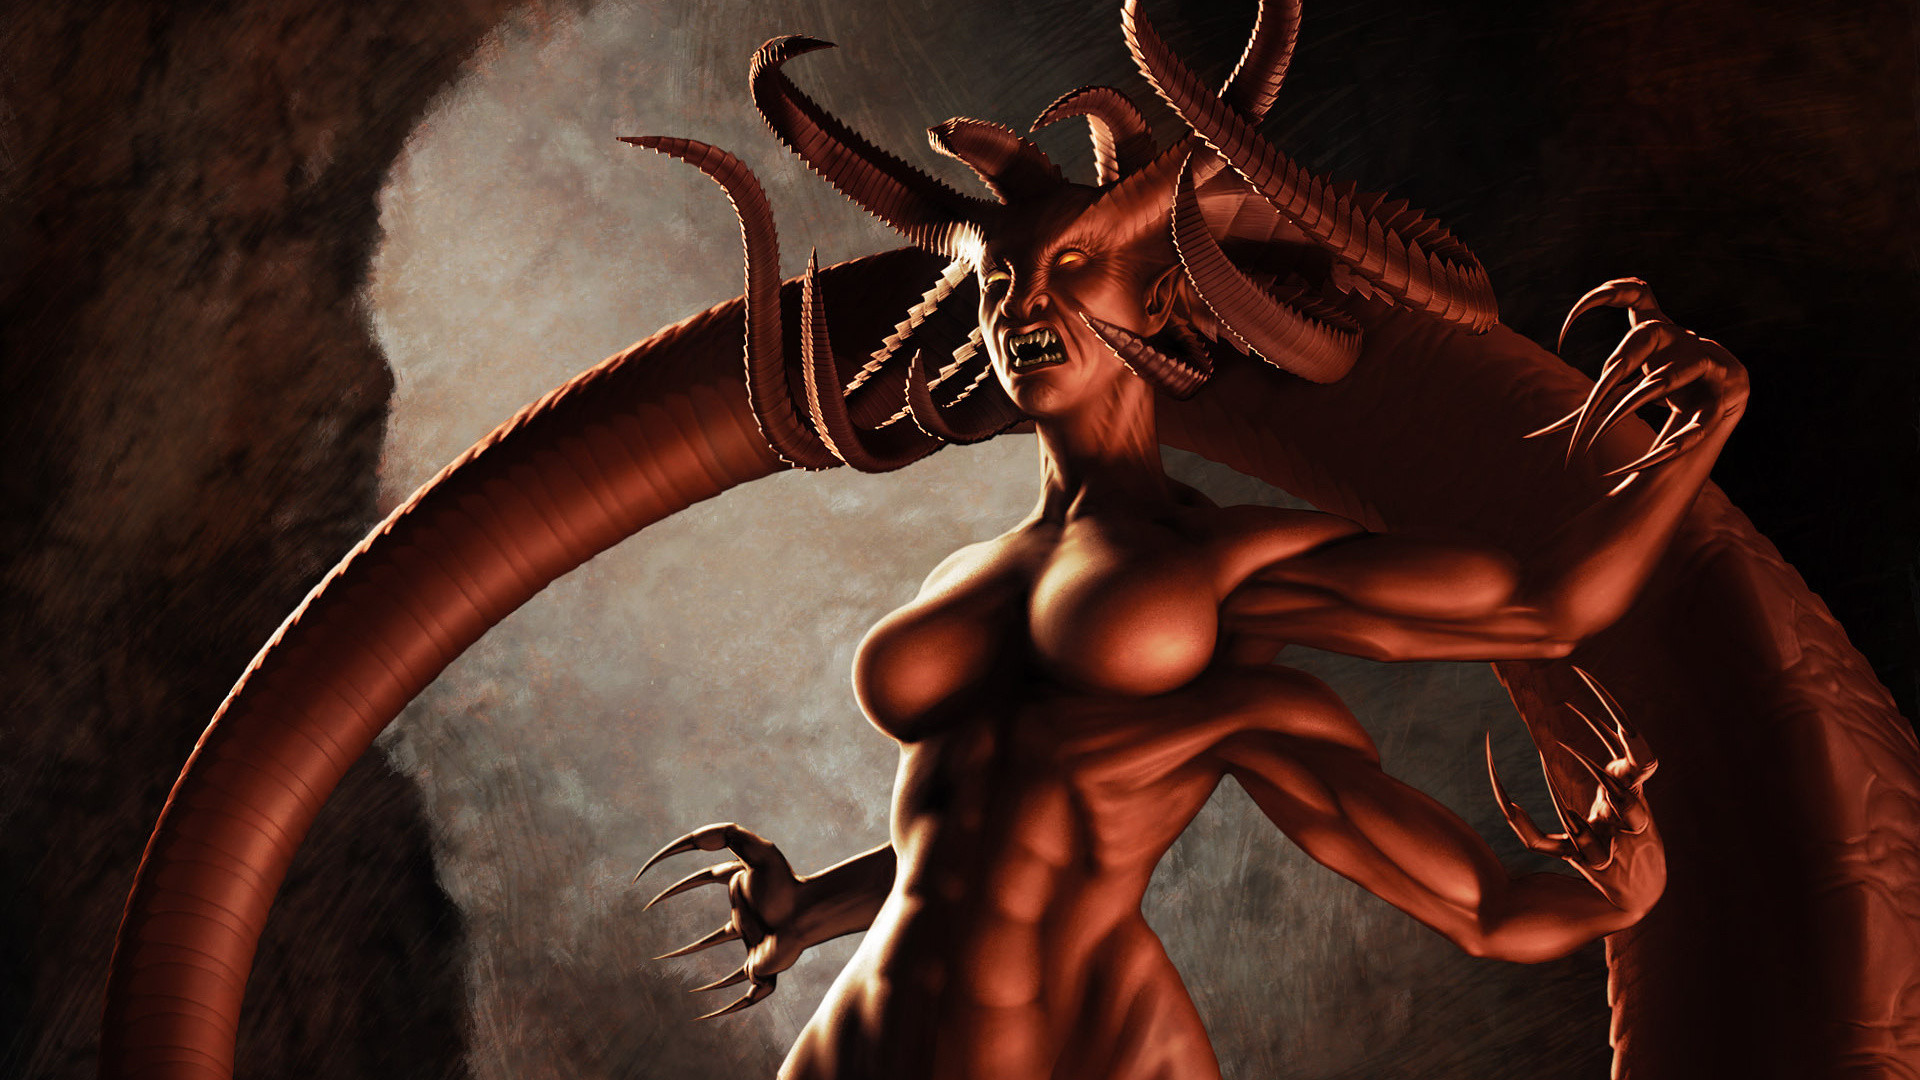 Claws, Cg Wallpapers, Kyoso No Oni, Horns, The Demon .